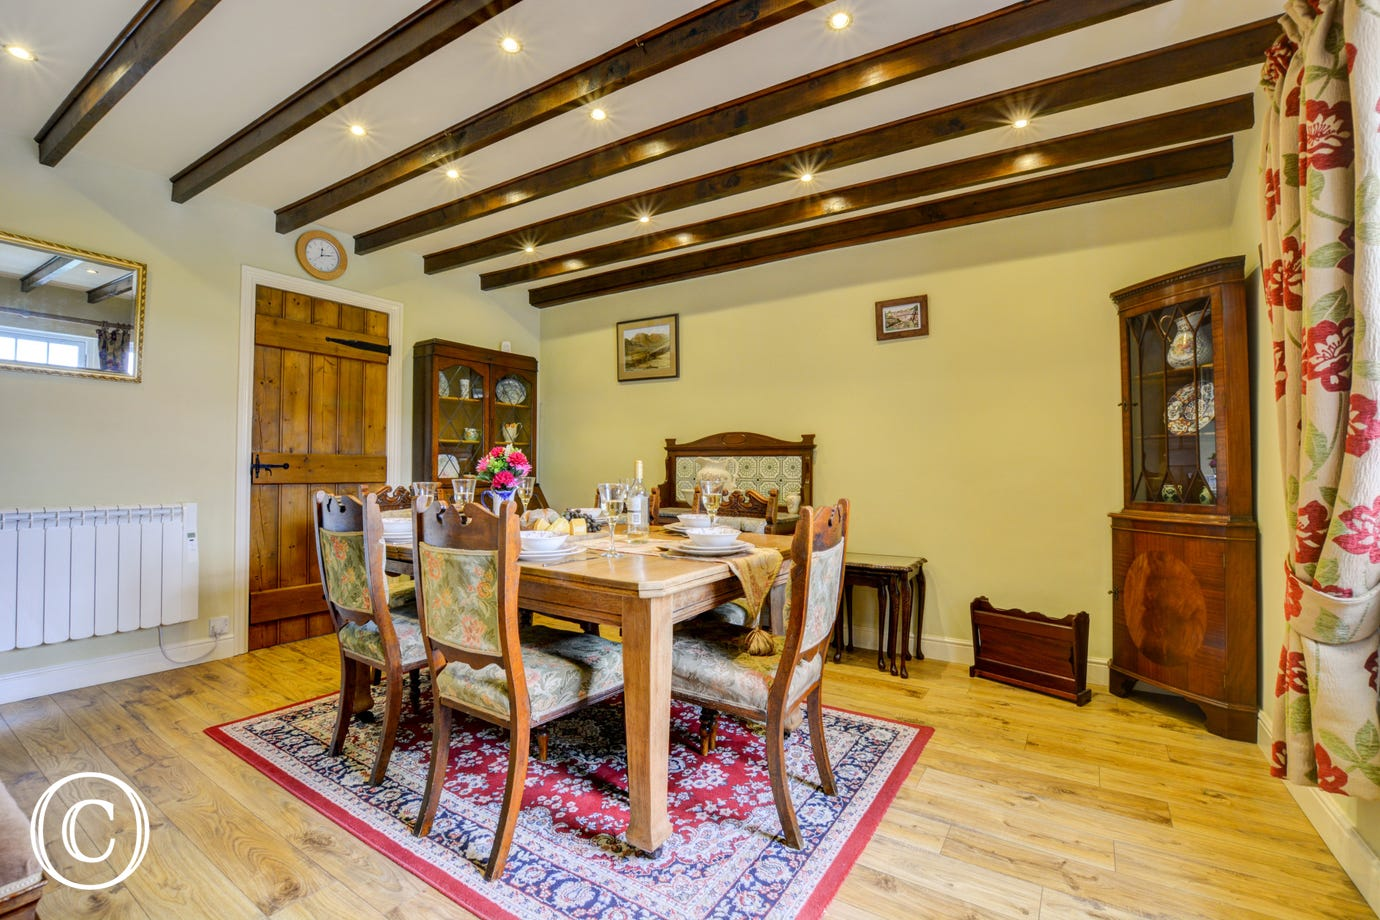 The spacious dining room with beamed ceiling and wood flooring